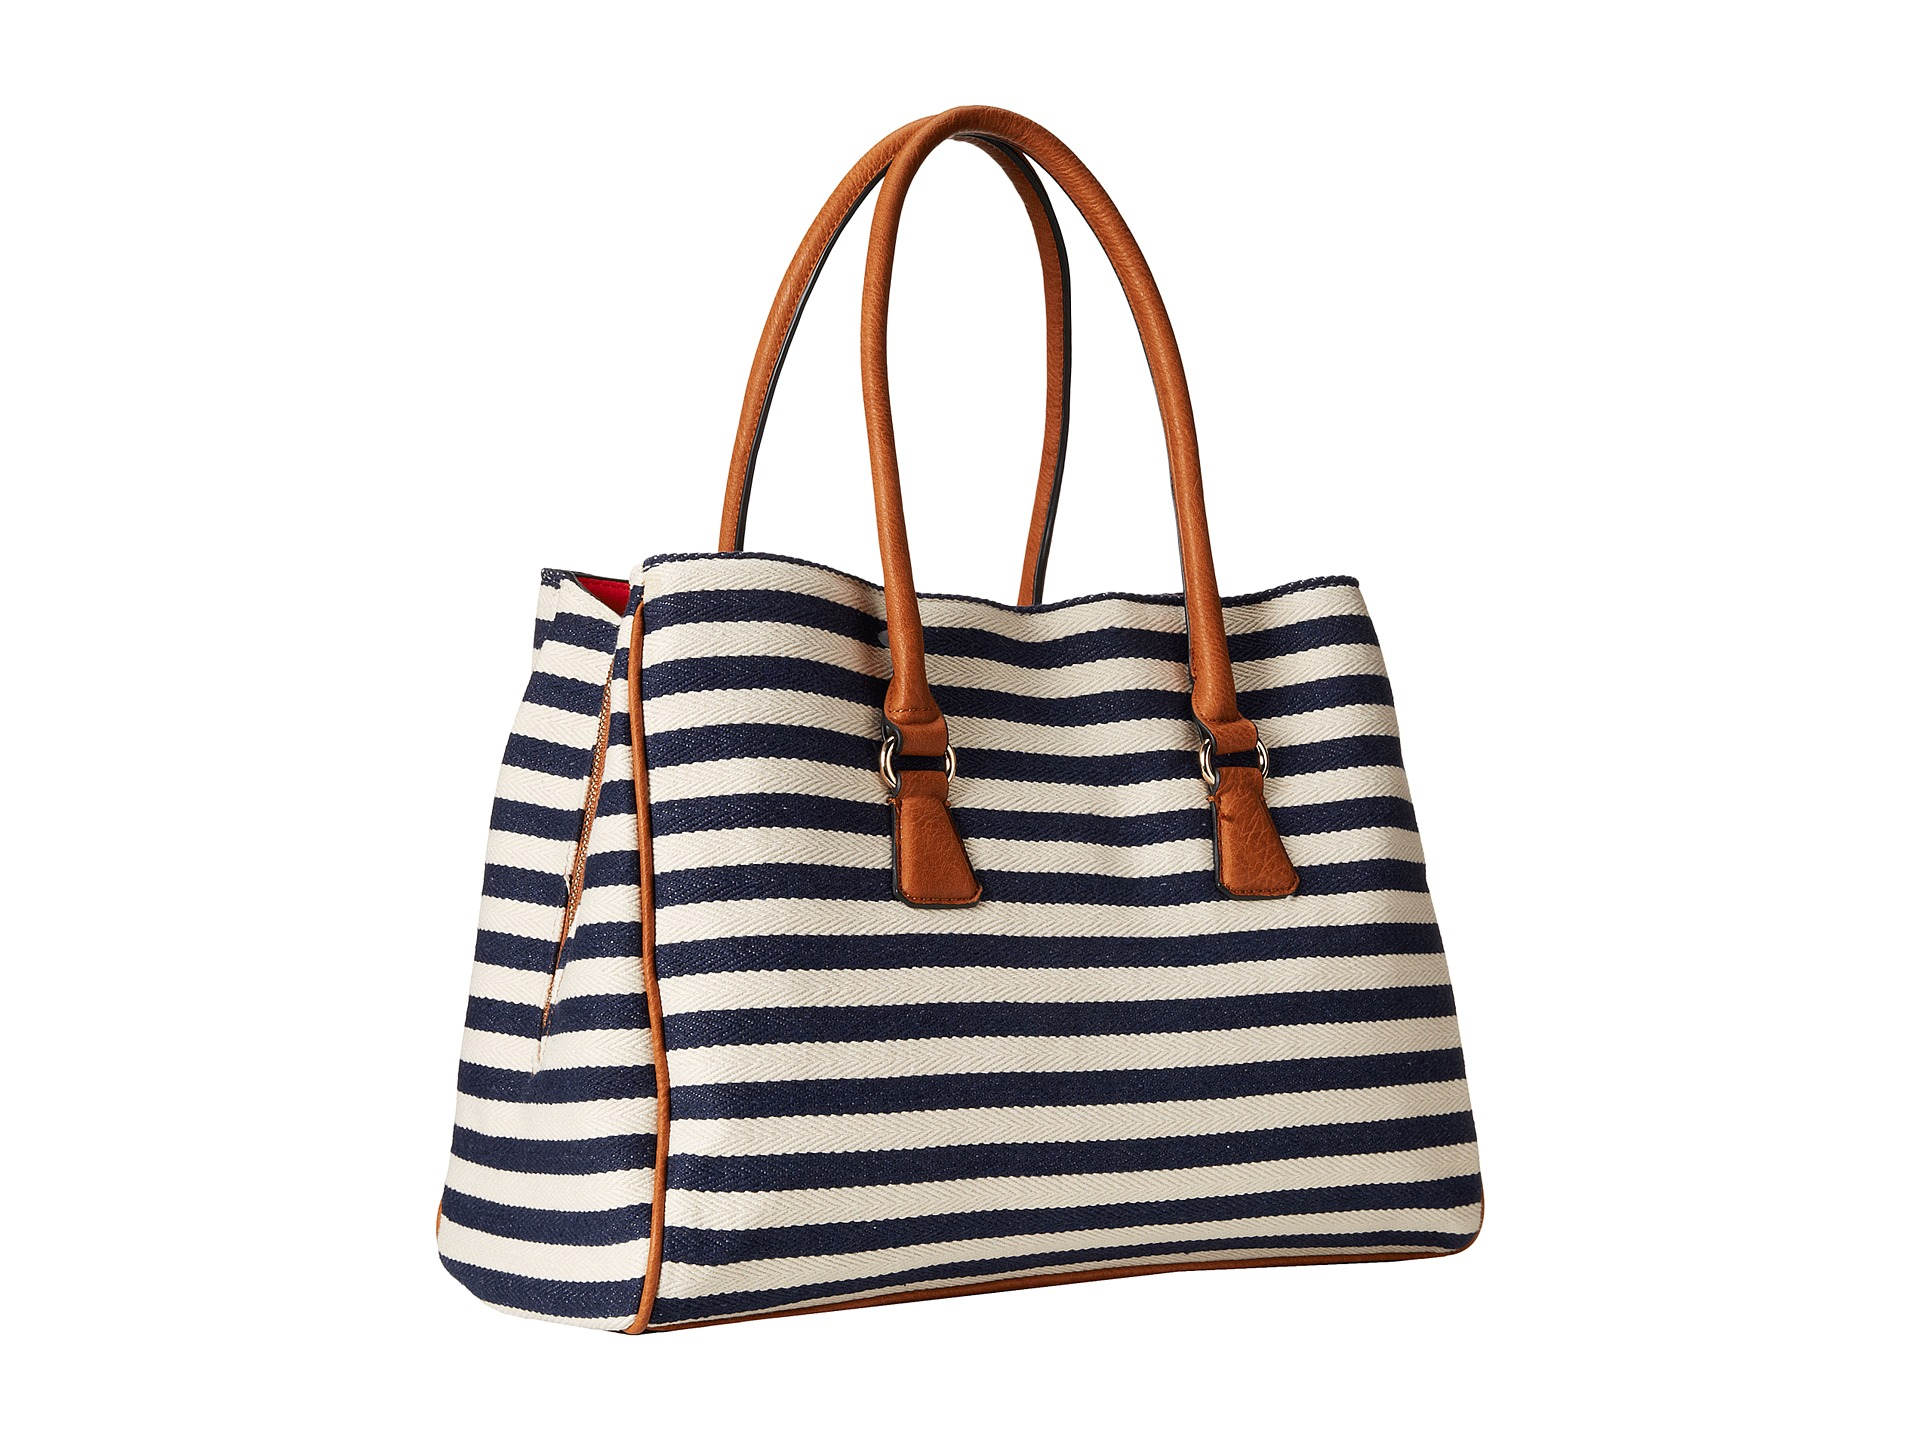 91550367f2 Lyst - ALDO Blanchfield Tote in Blue